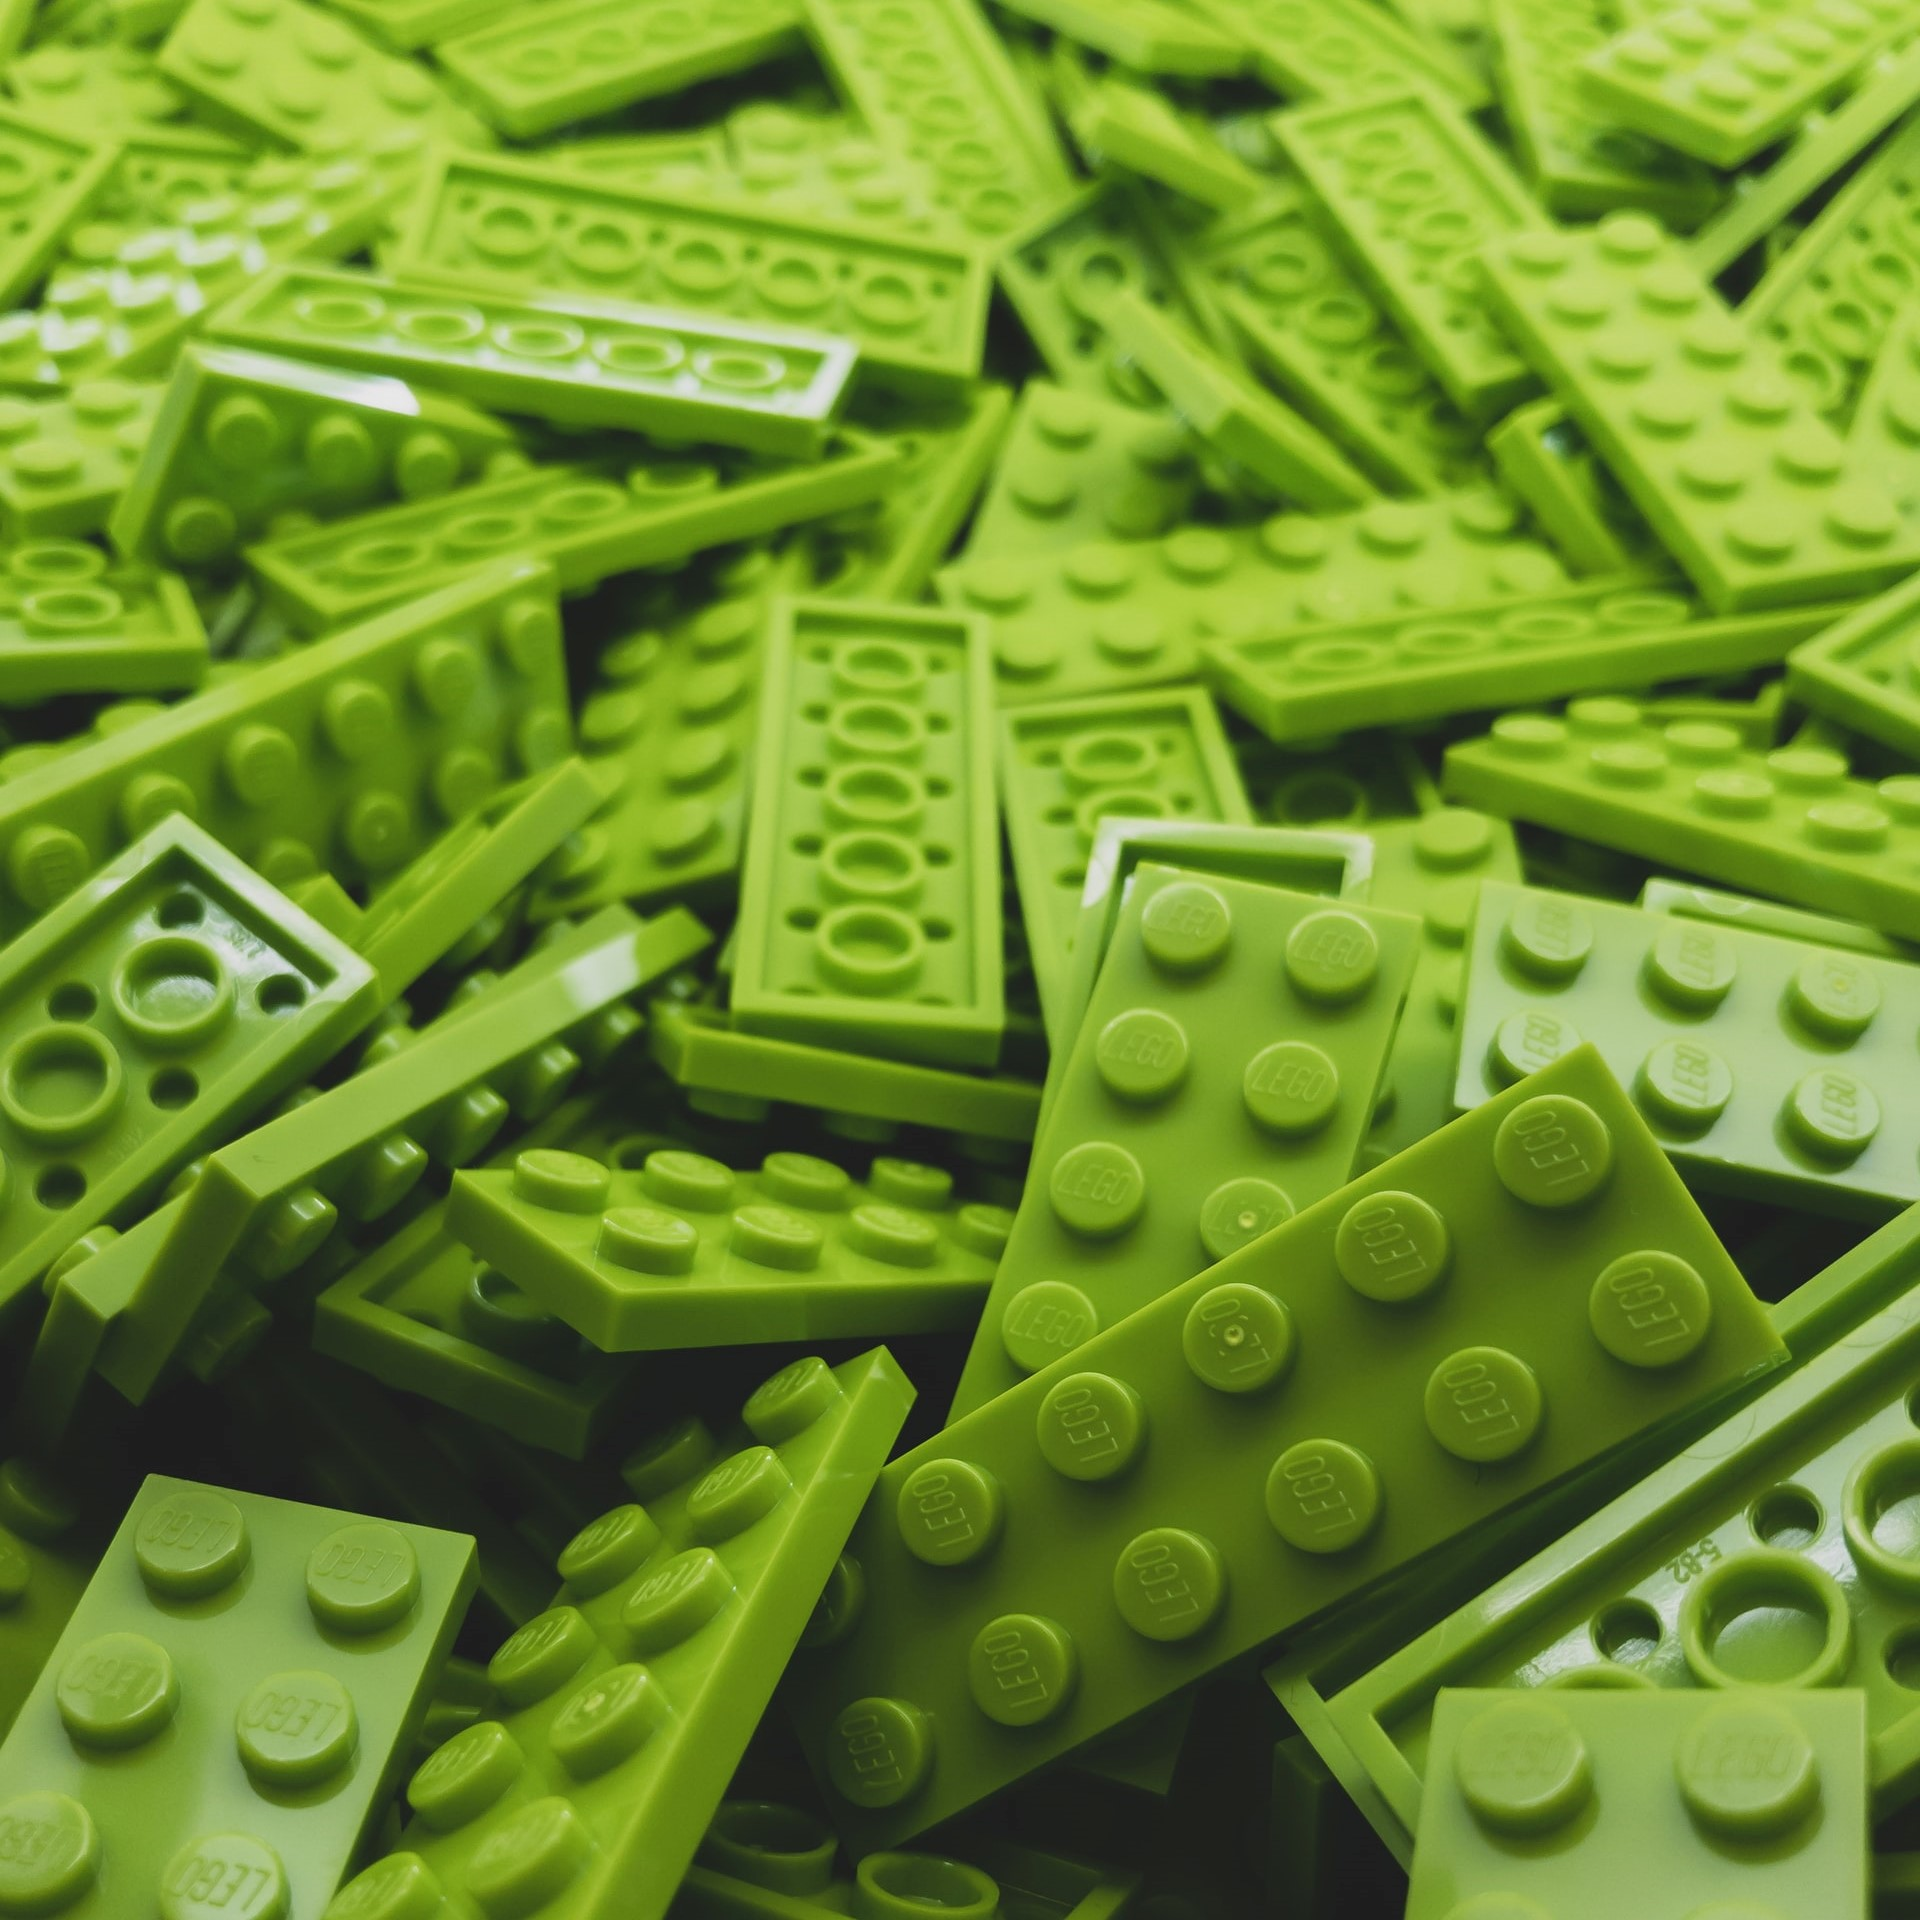 Green lego bricks